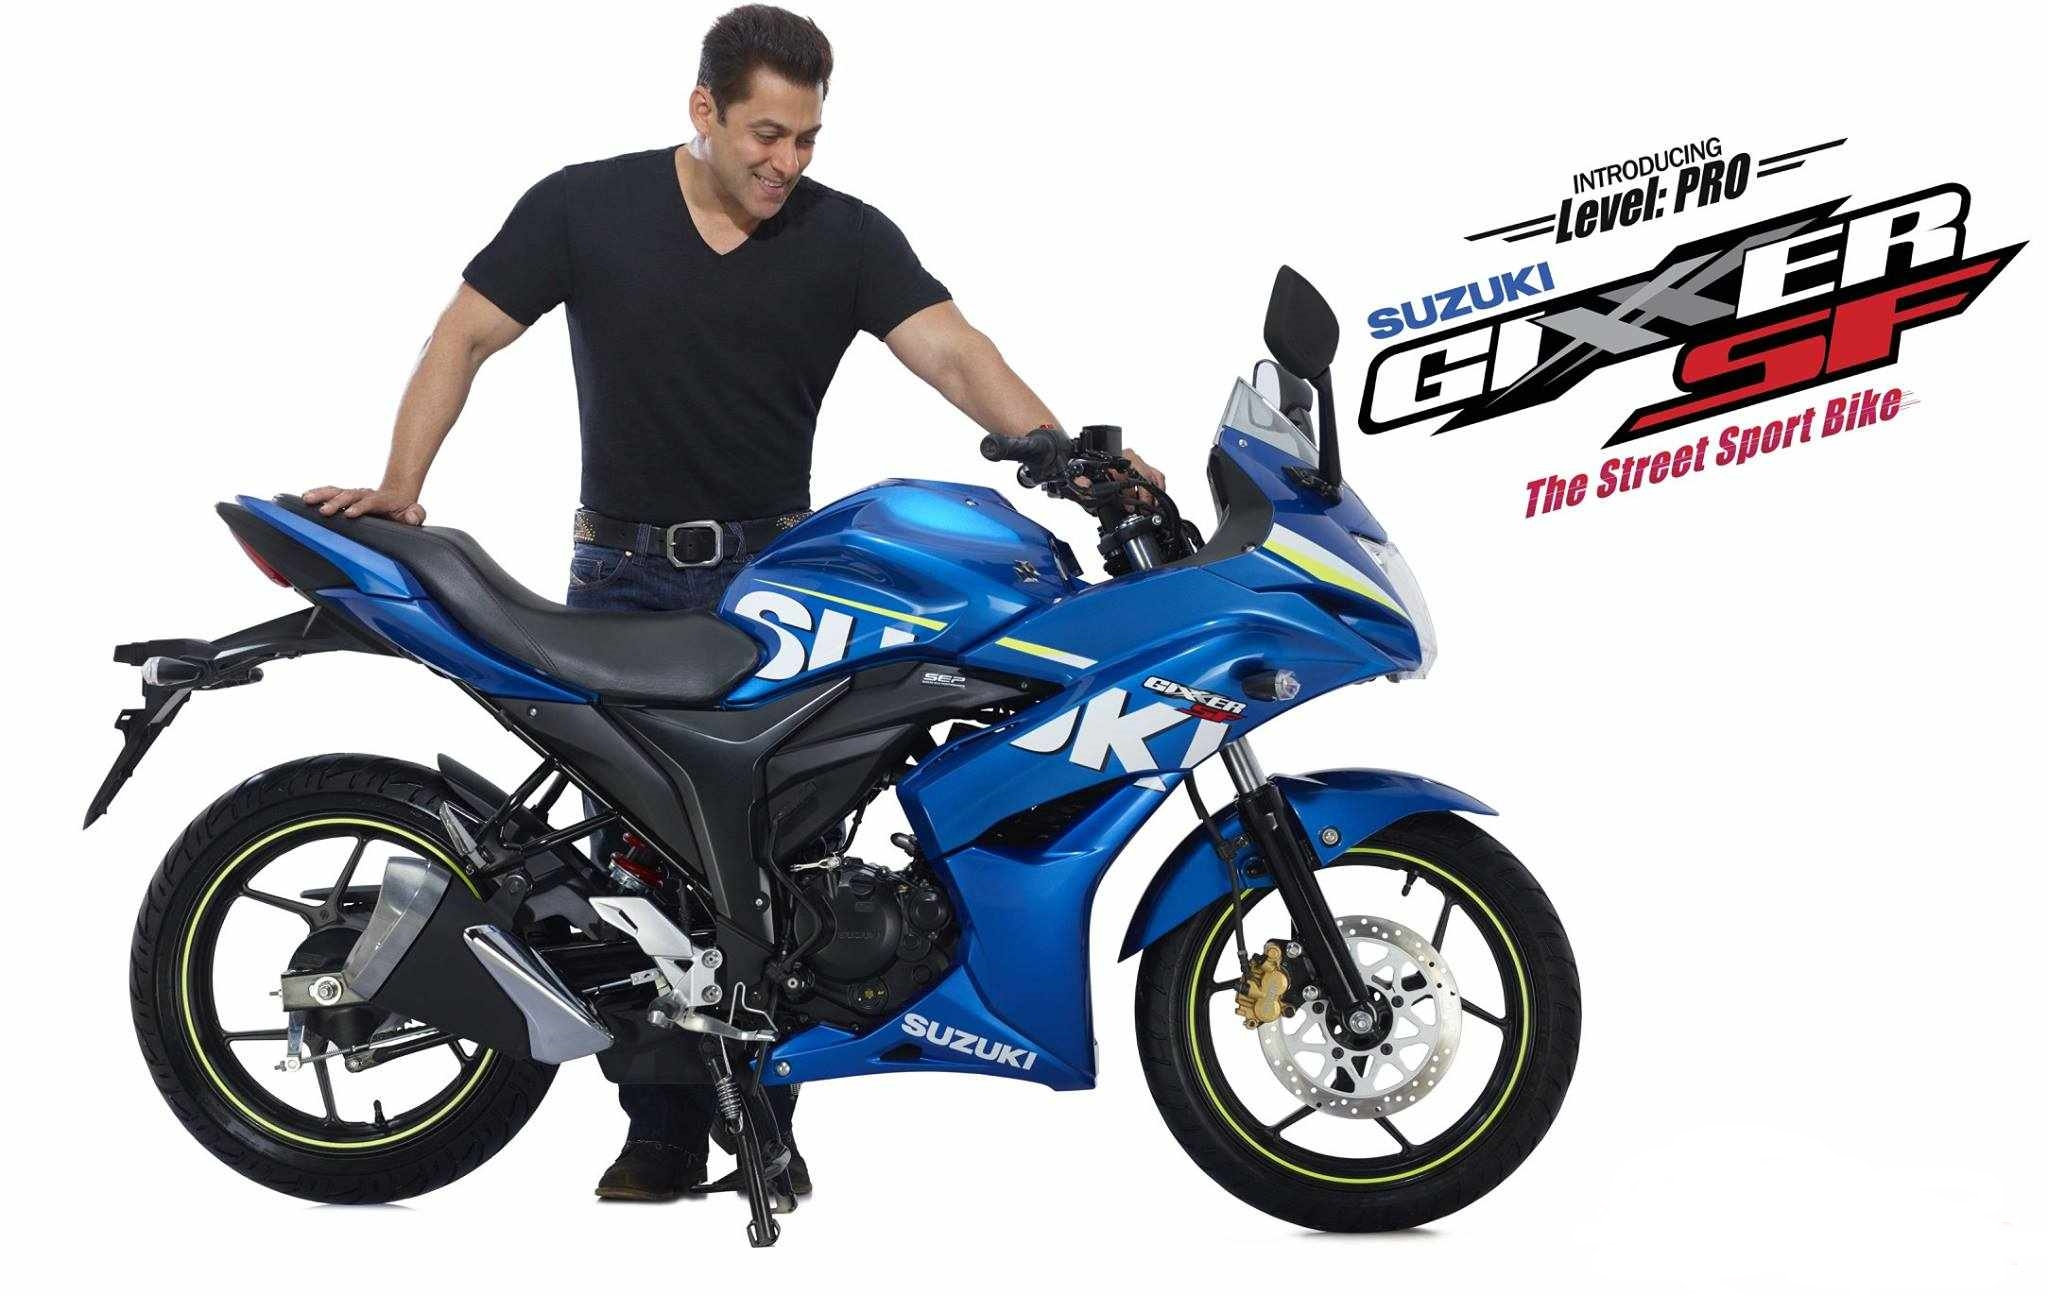 suzuki gixxer sf photos images and wallpapers colours. Black Bedroom Furniture Sets. Home Design Ideas